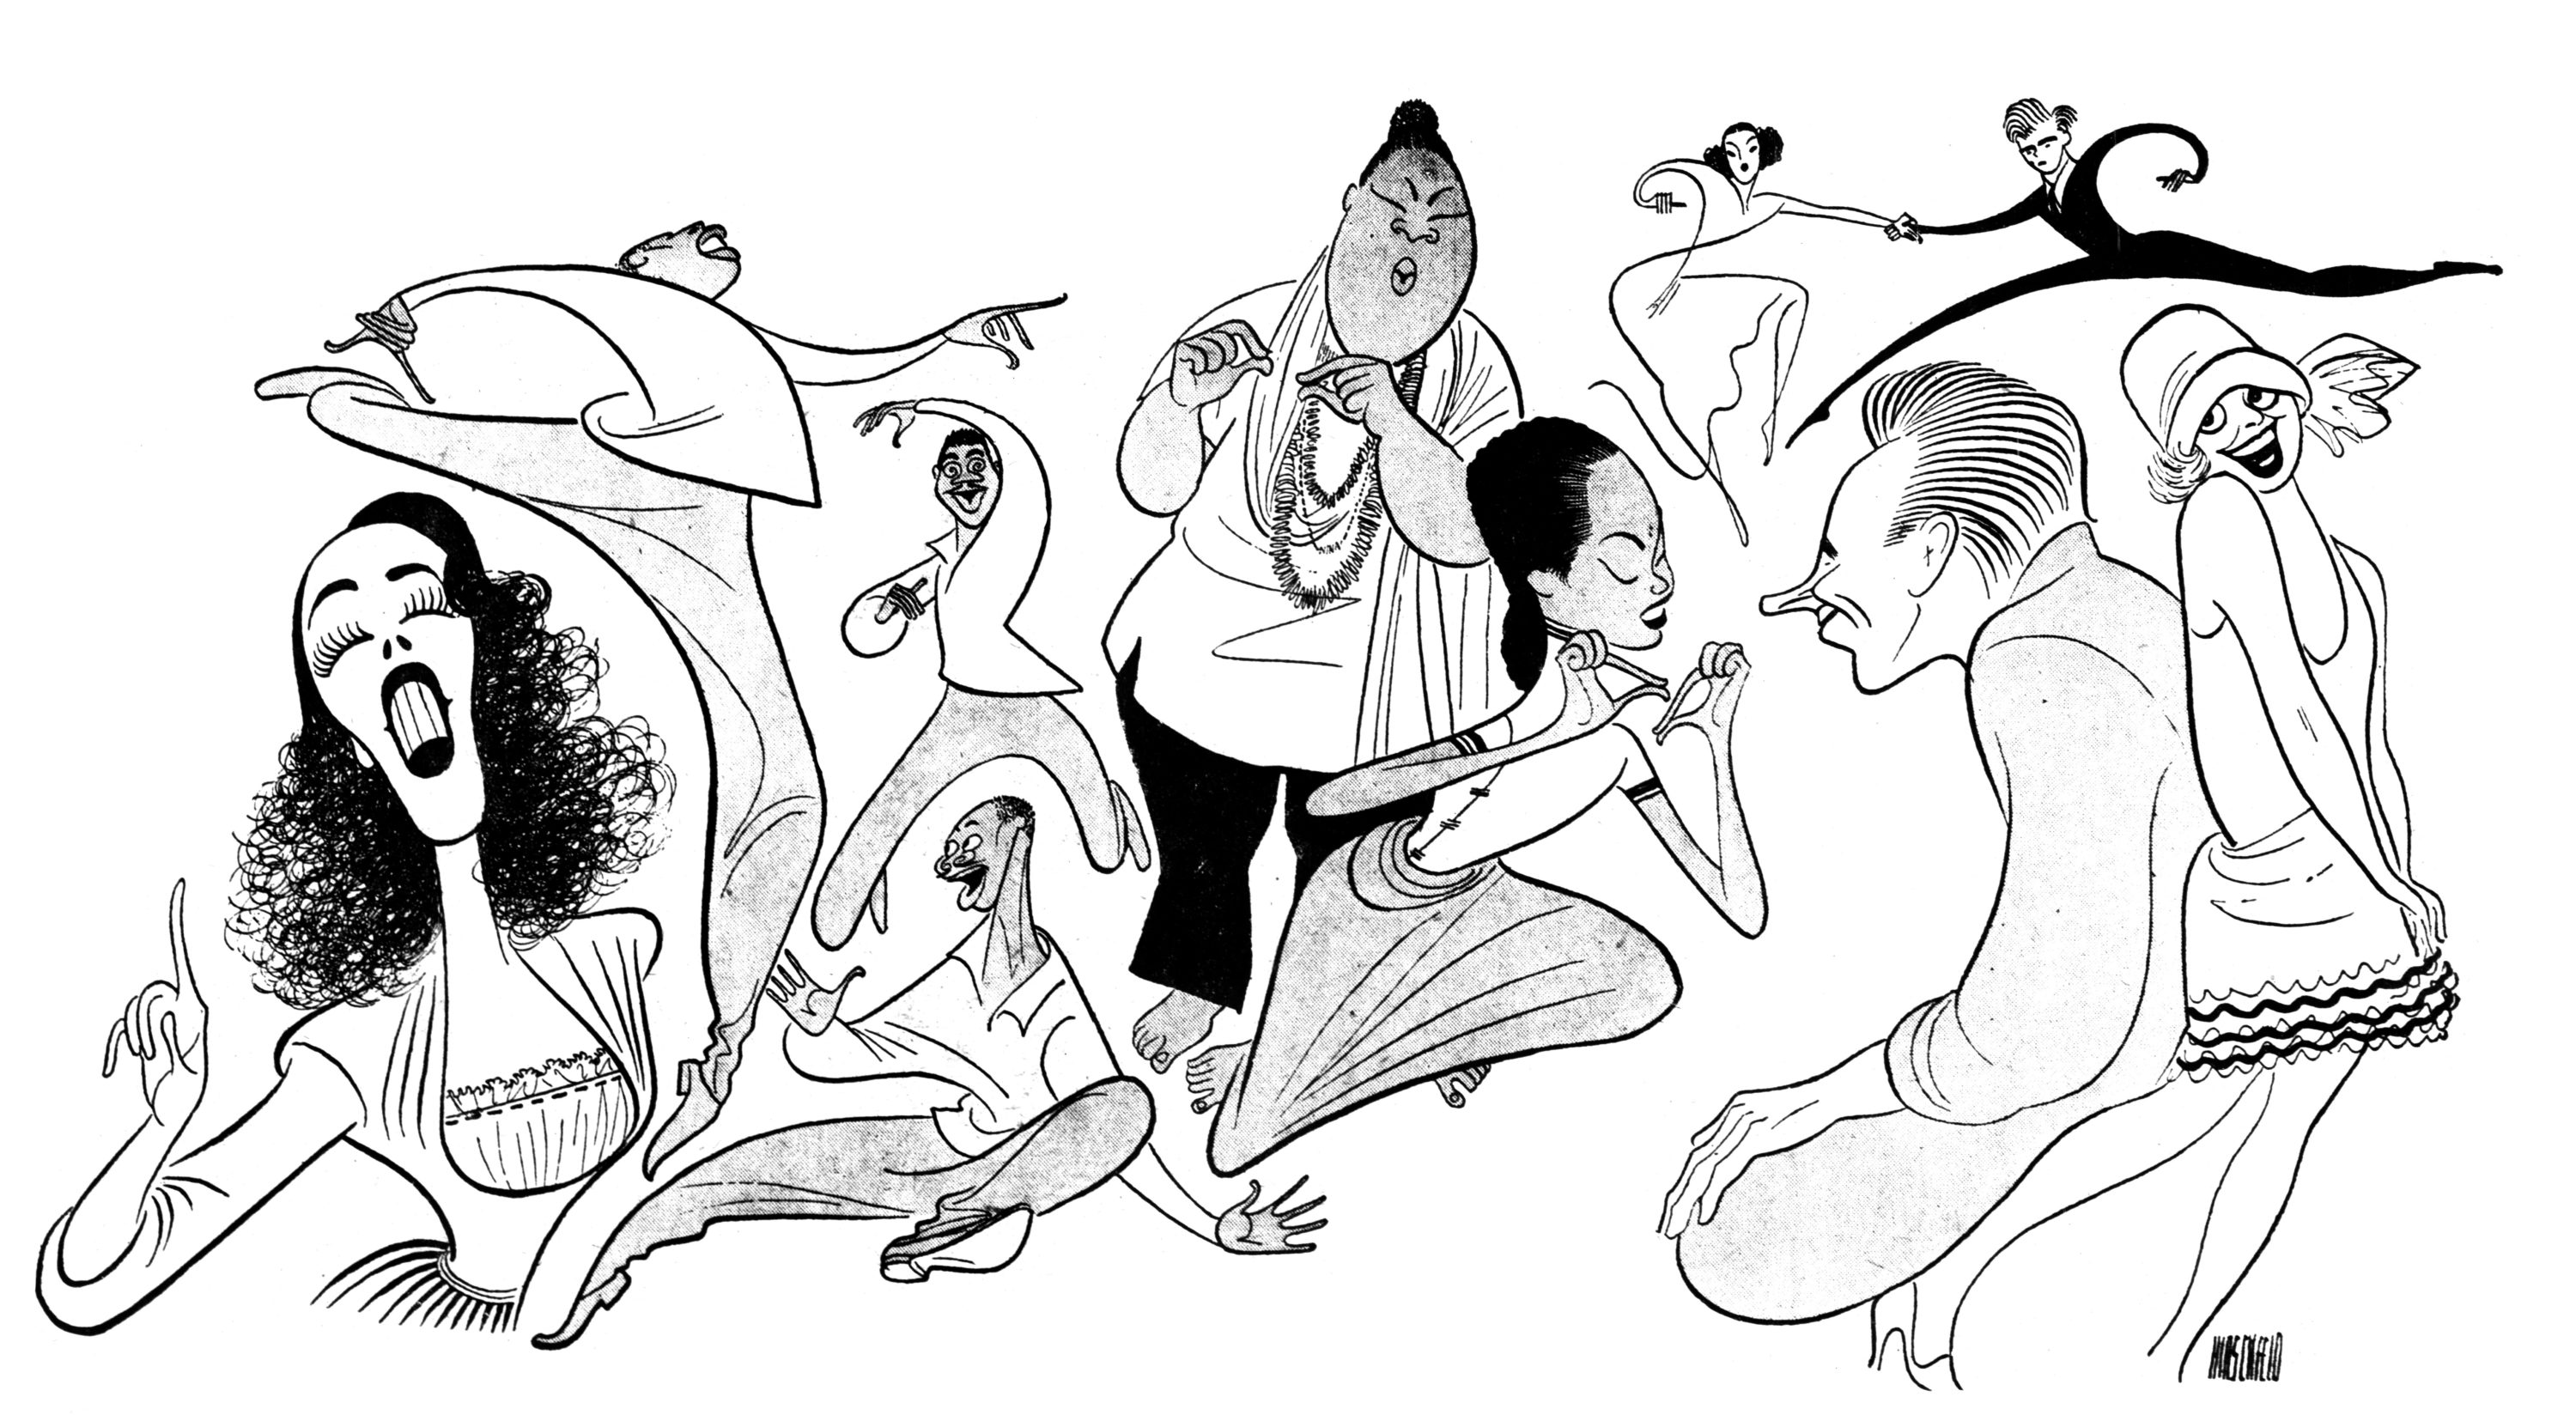 Al Hirschfeld, Carol Channing (right) in Supporting Players whose Numbers Stop their Musical Shows, 1949. © The Al Hirschfeld Foundation. All rights reserved. www.AlHirschfeldFoundation.org.